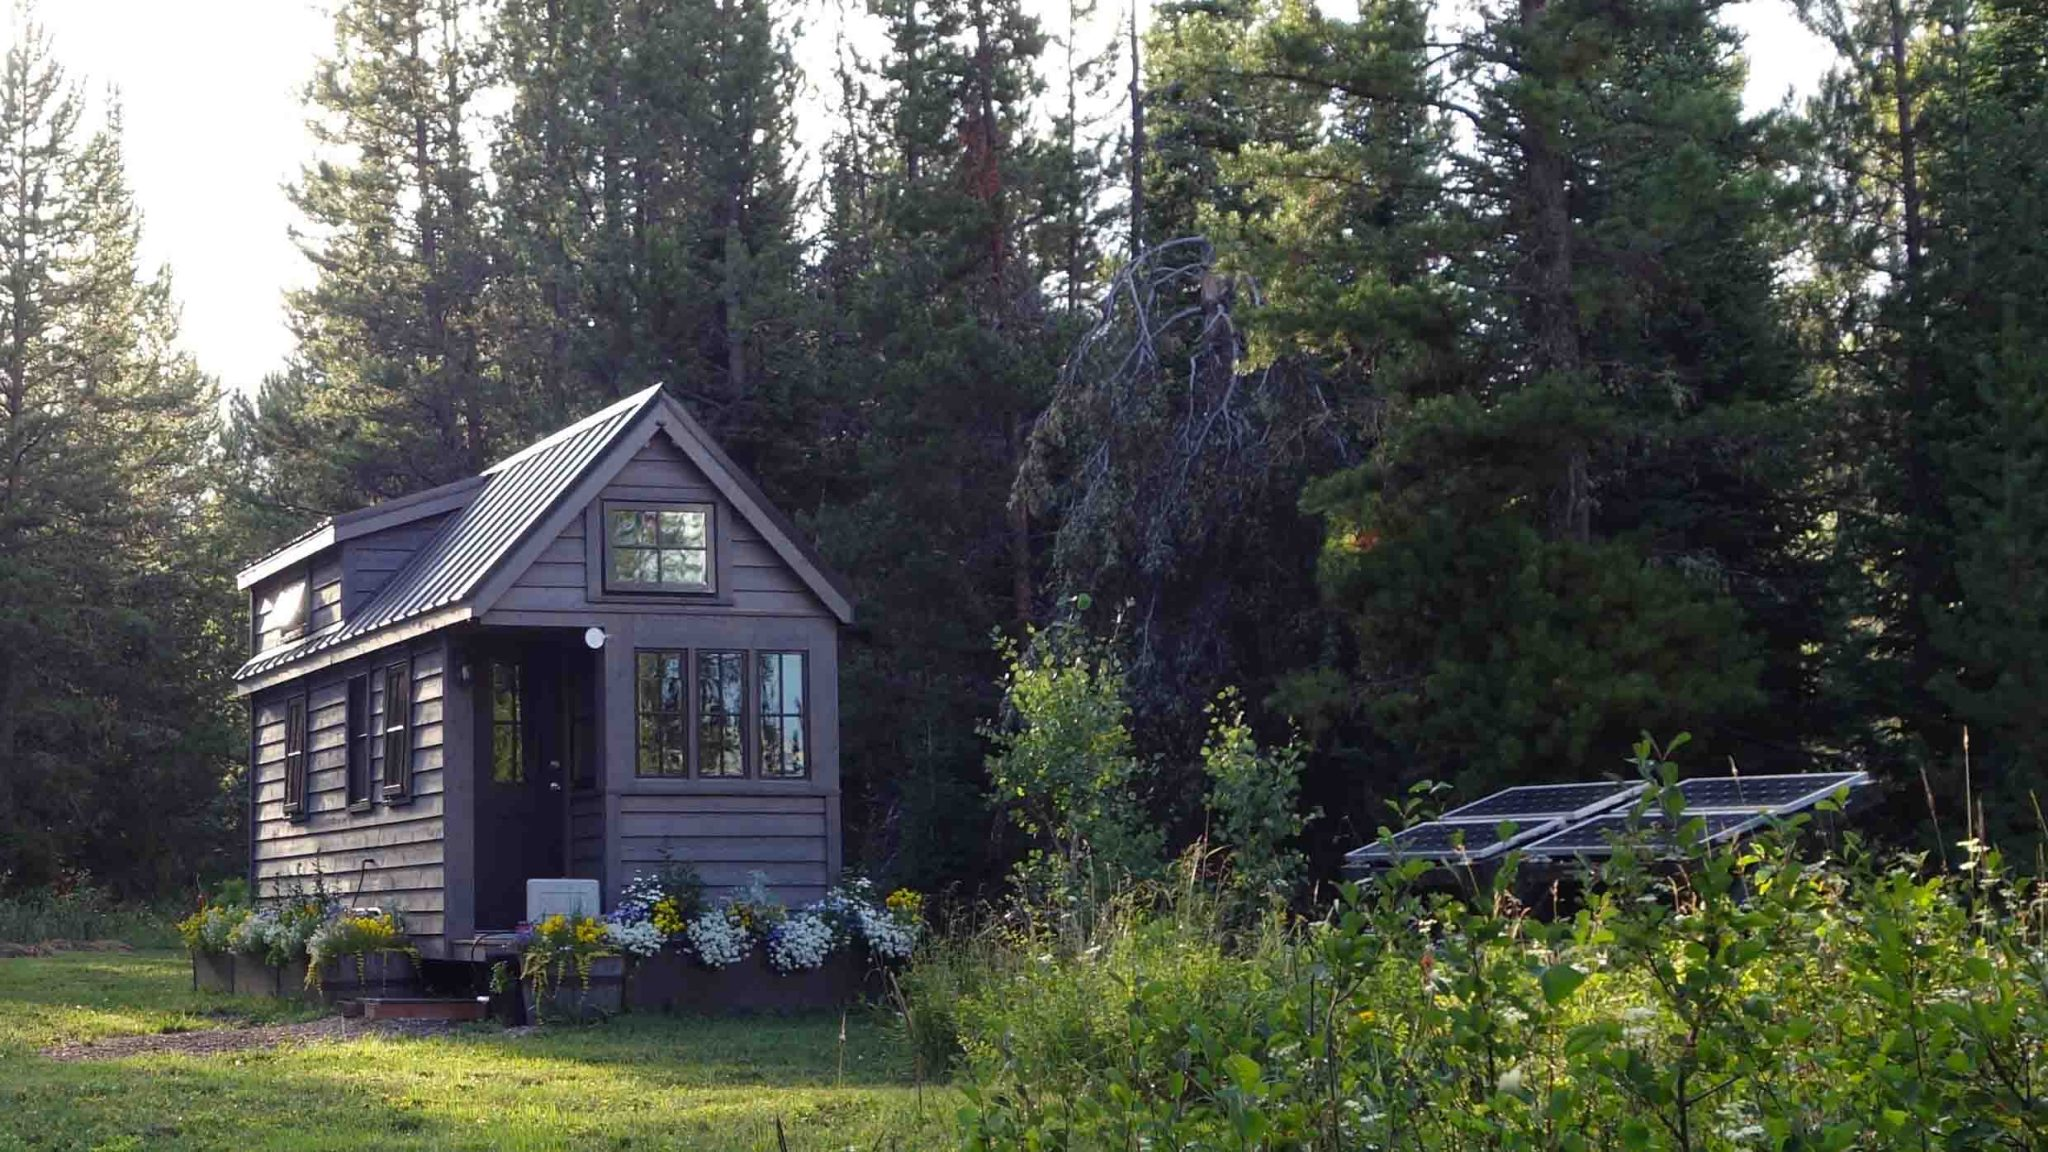 Off-Grid living in Rural Setting